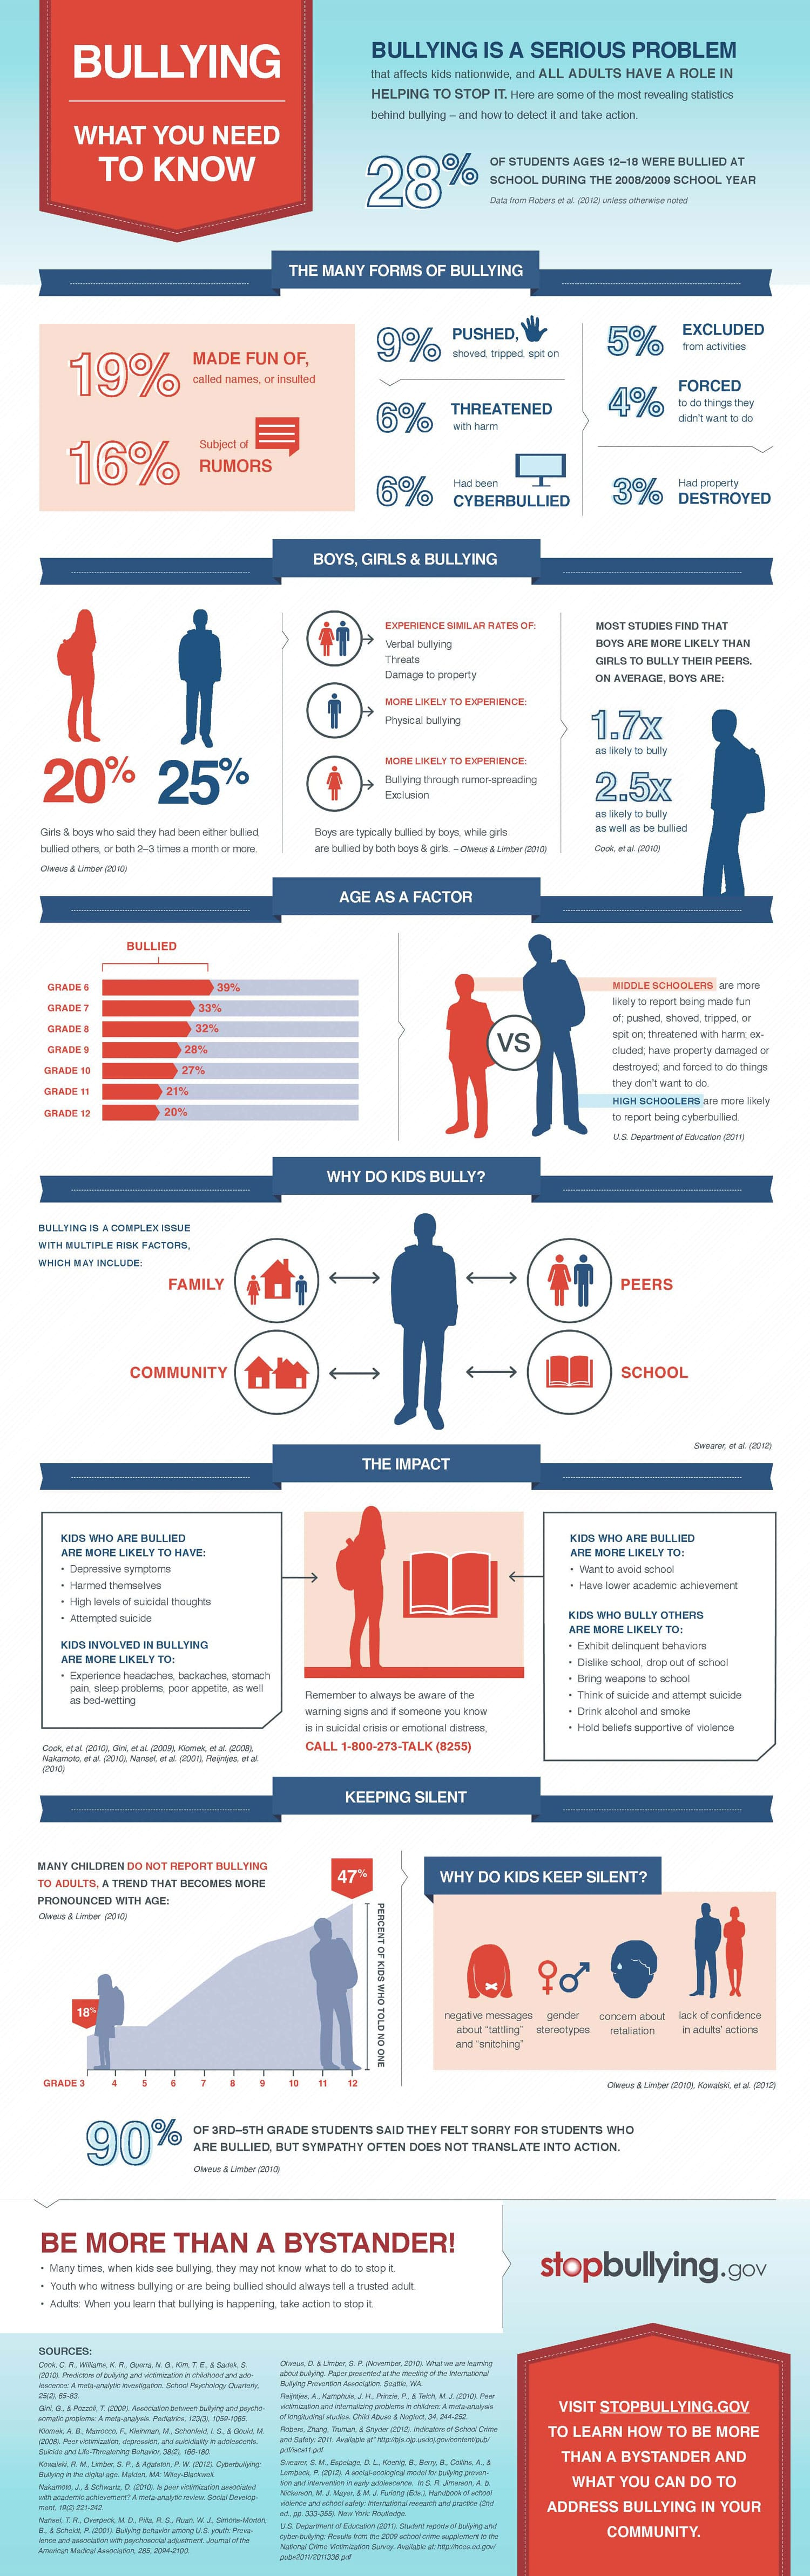 Latest Statistics About Bullying & How You Can Help [Infographic]